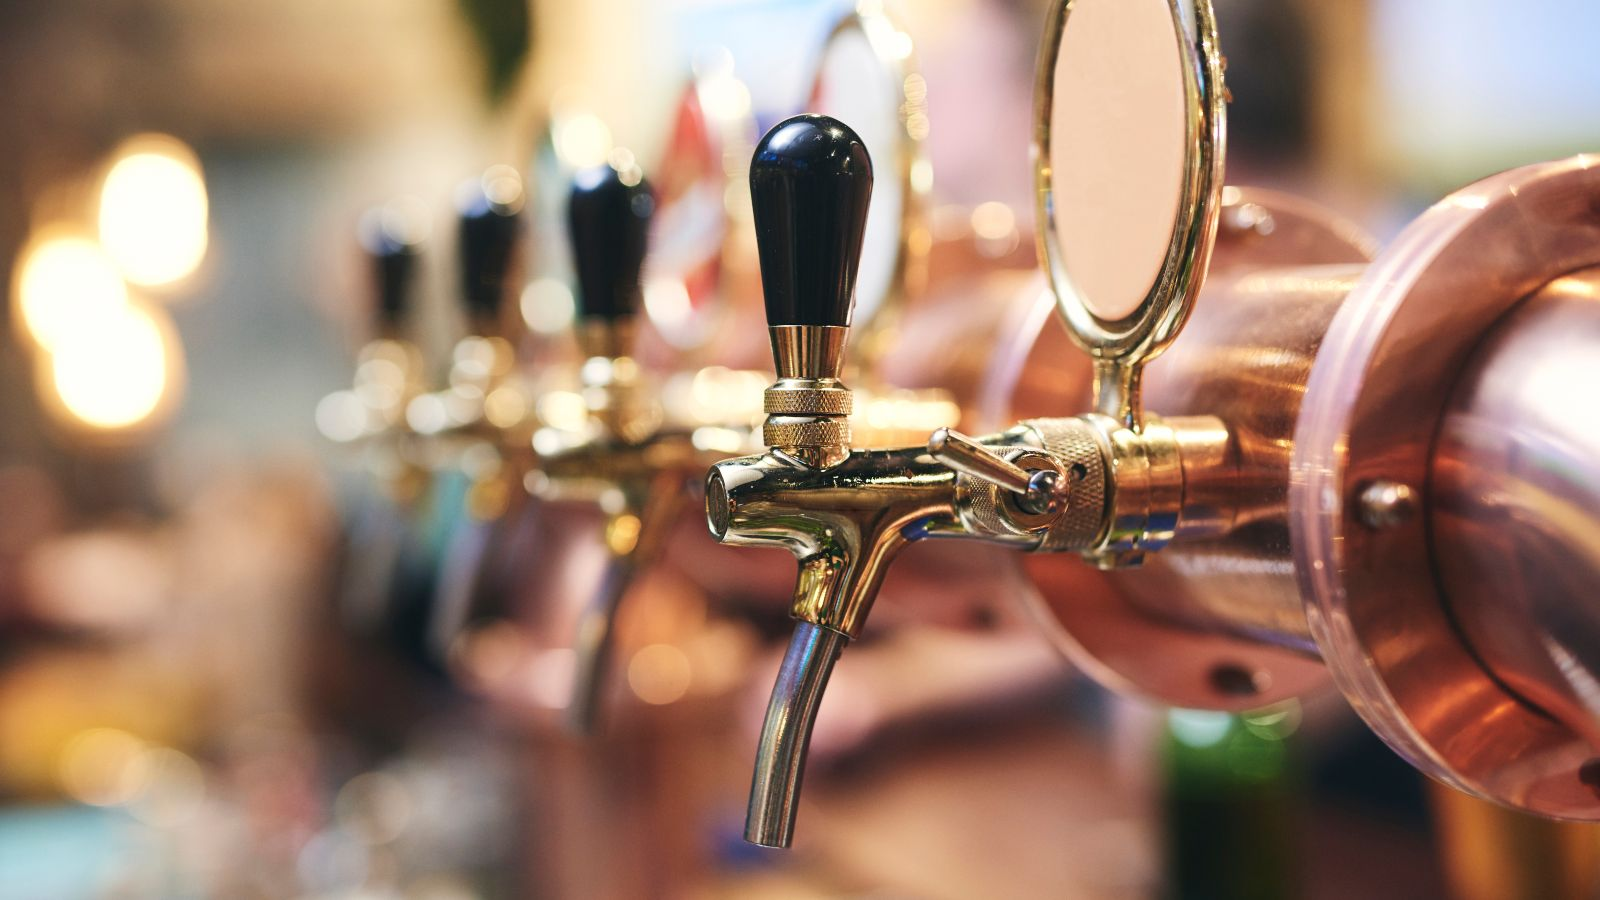 craft beer taps